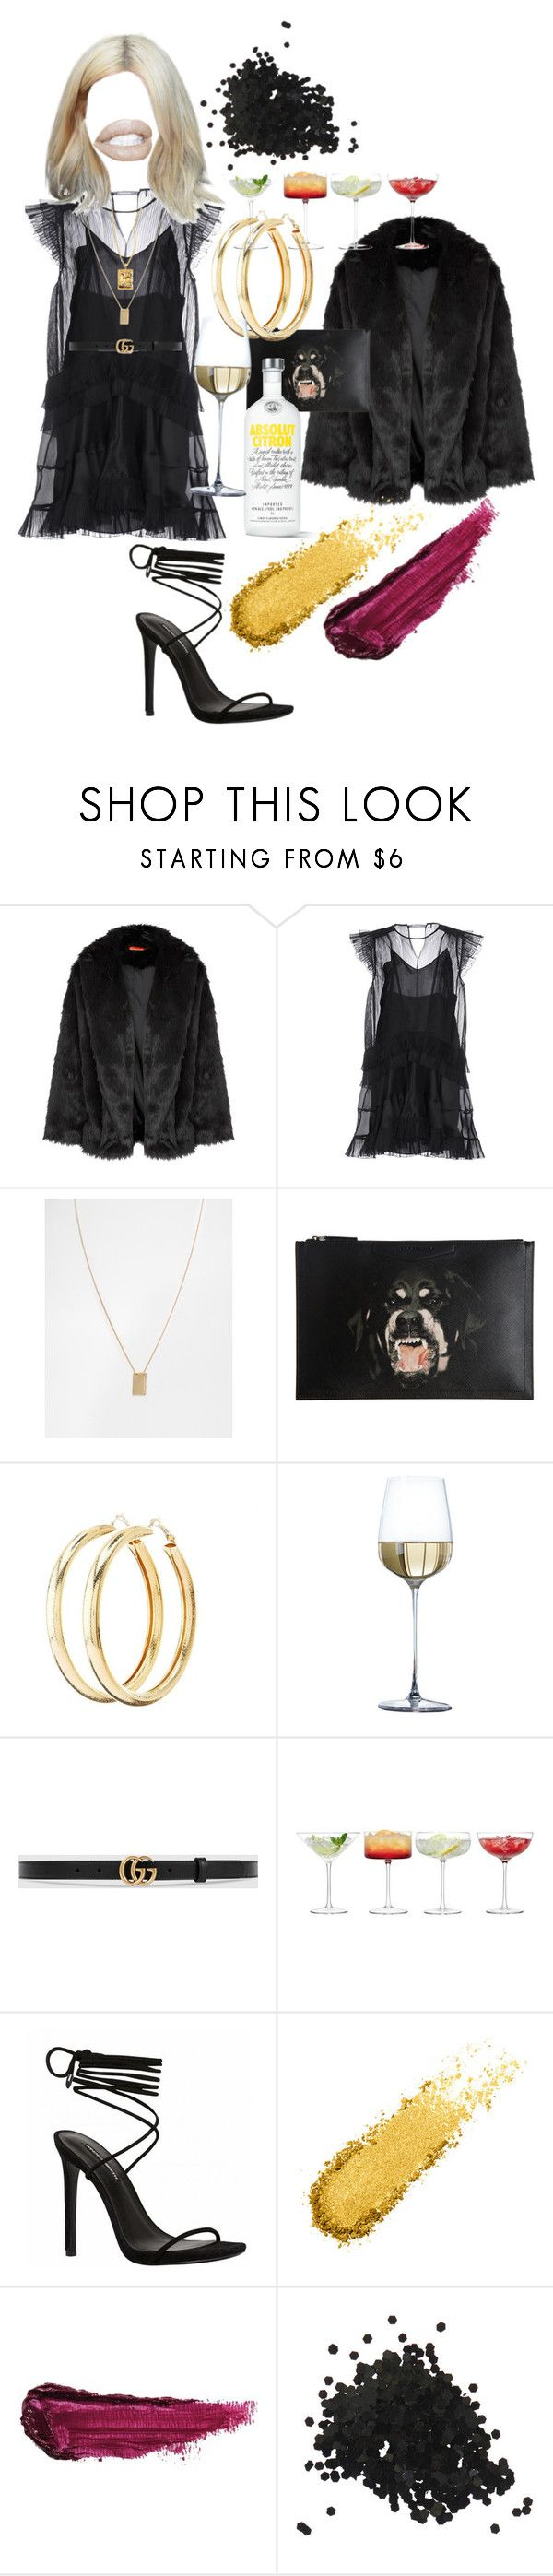 """Untitled #241"" by fashiondisguise on Polyvore featuring Alice + Olivia, Isabel Marant, Pieces, Givenchy, Charlotte Russe, Gucci, LSA International, By Terry and Topshop"